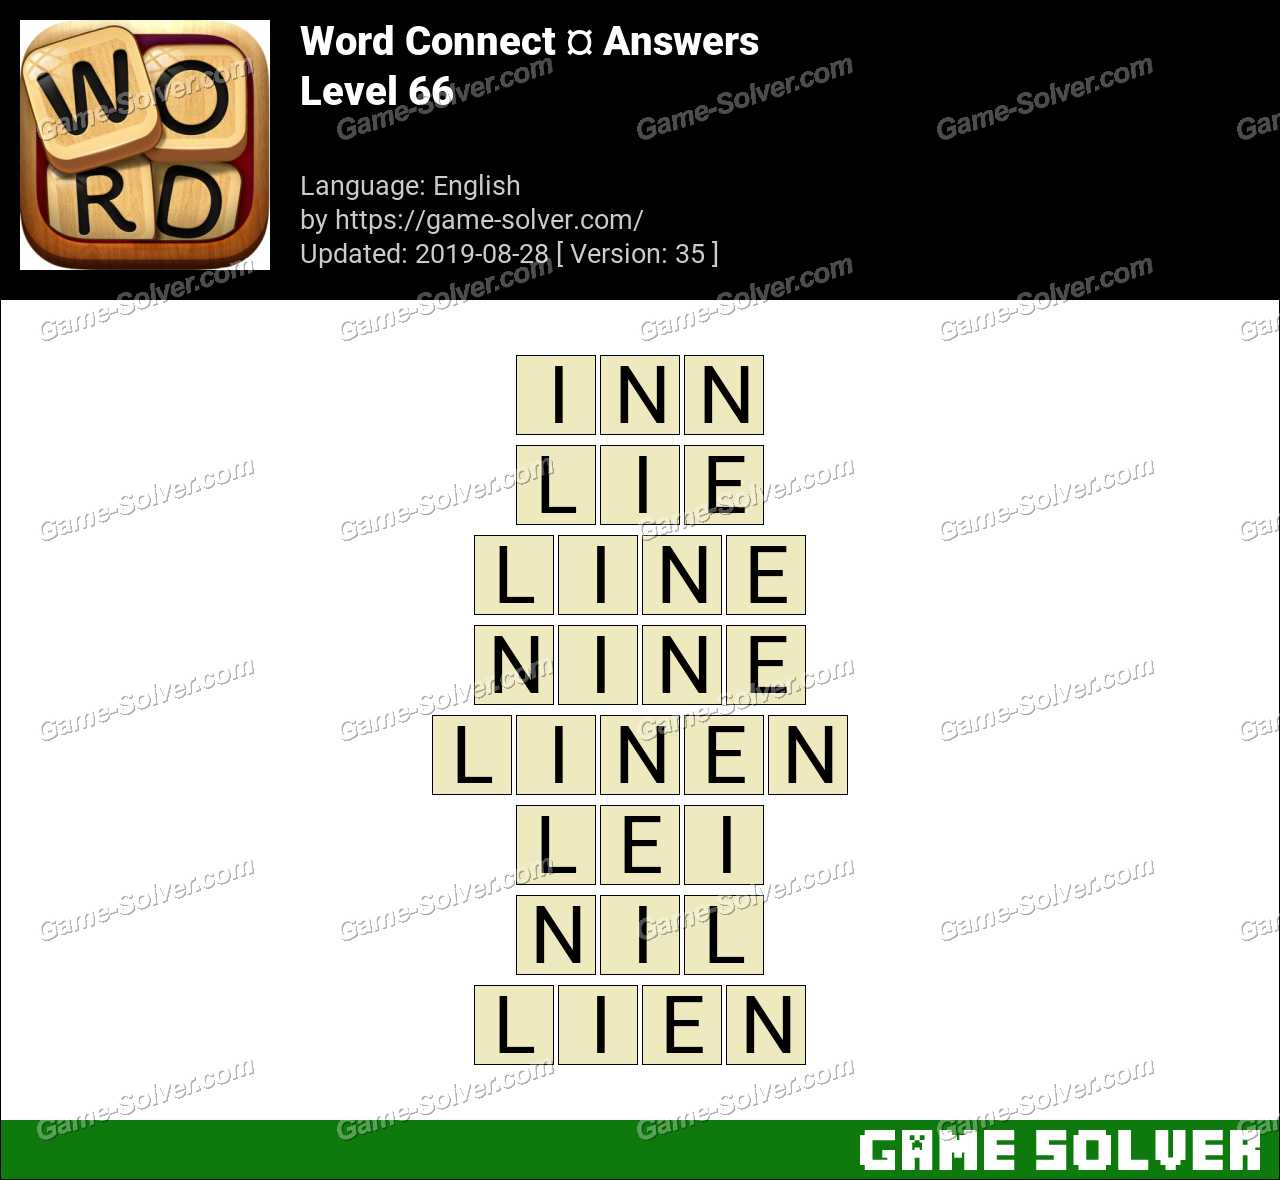 Word Connect Level 66 Answers - Game Solver